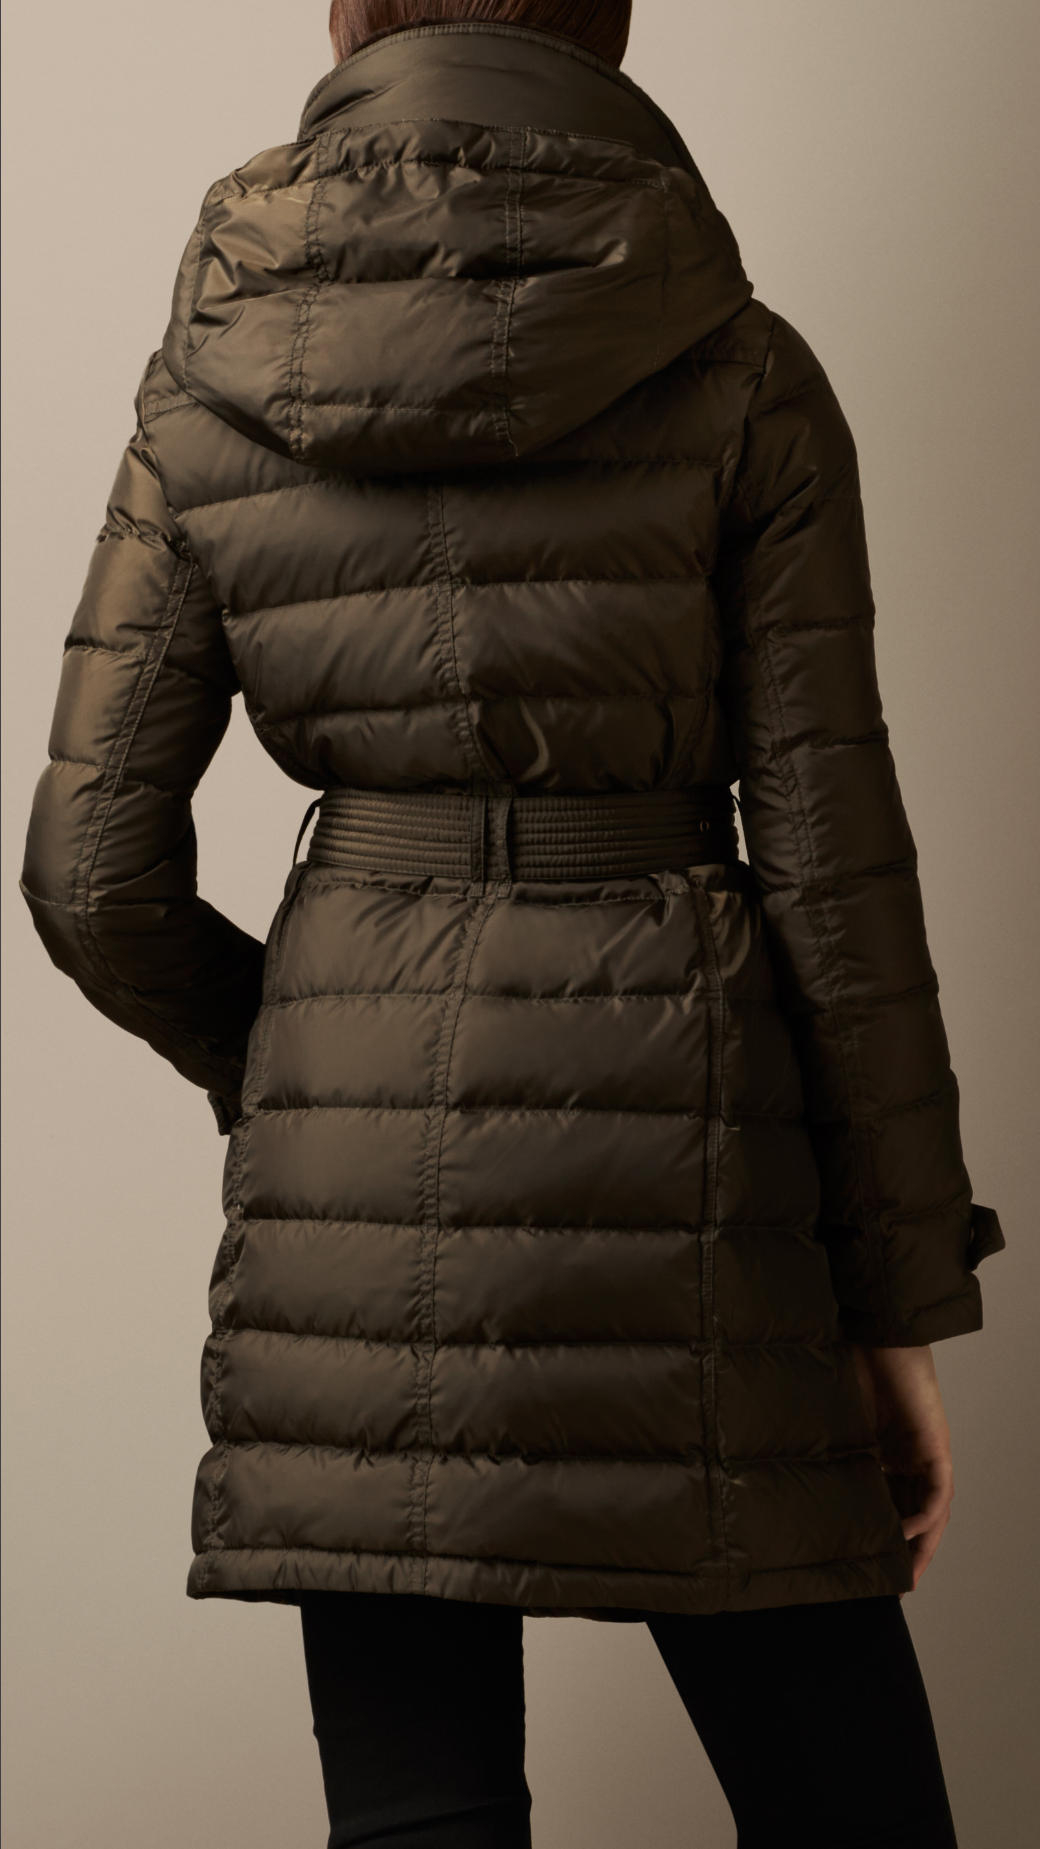 Burberry Down-filled Coat With Shearling Collar in Natural | Lyst